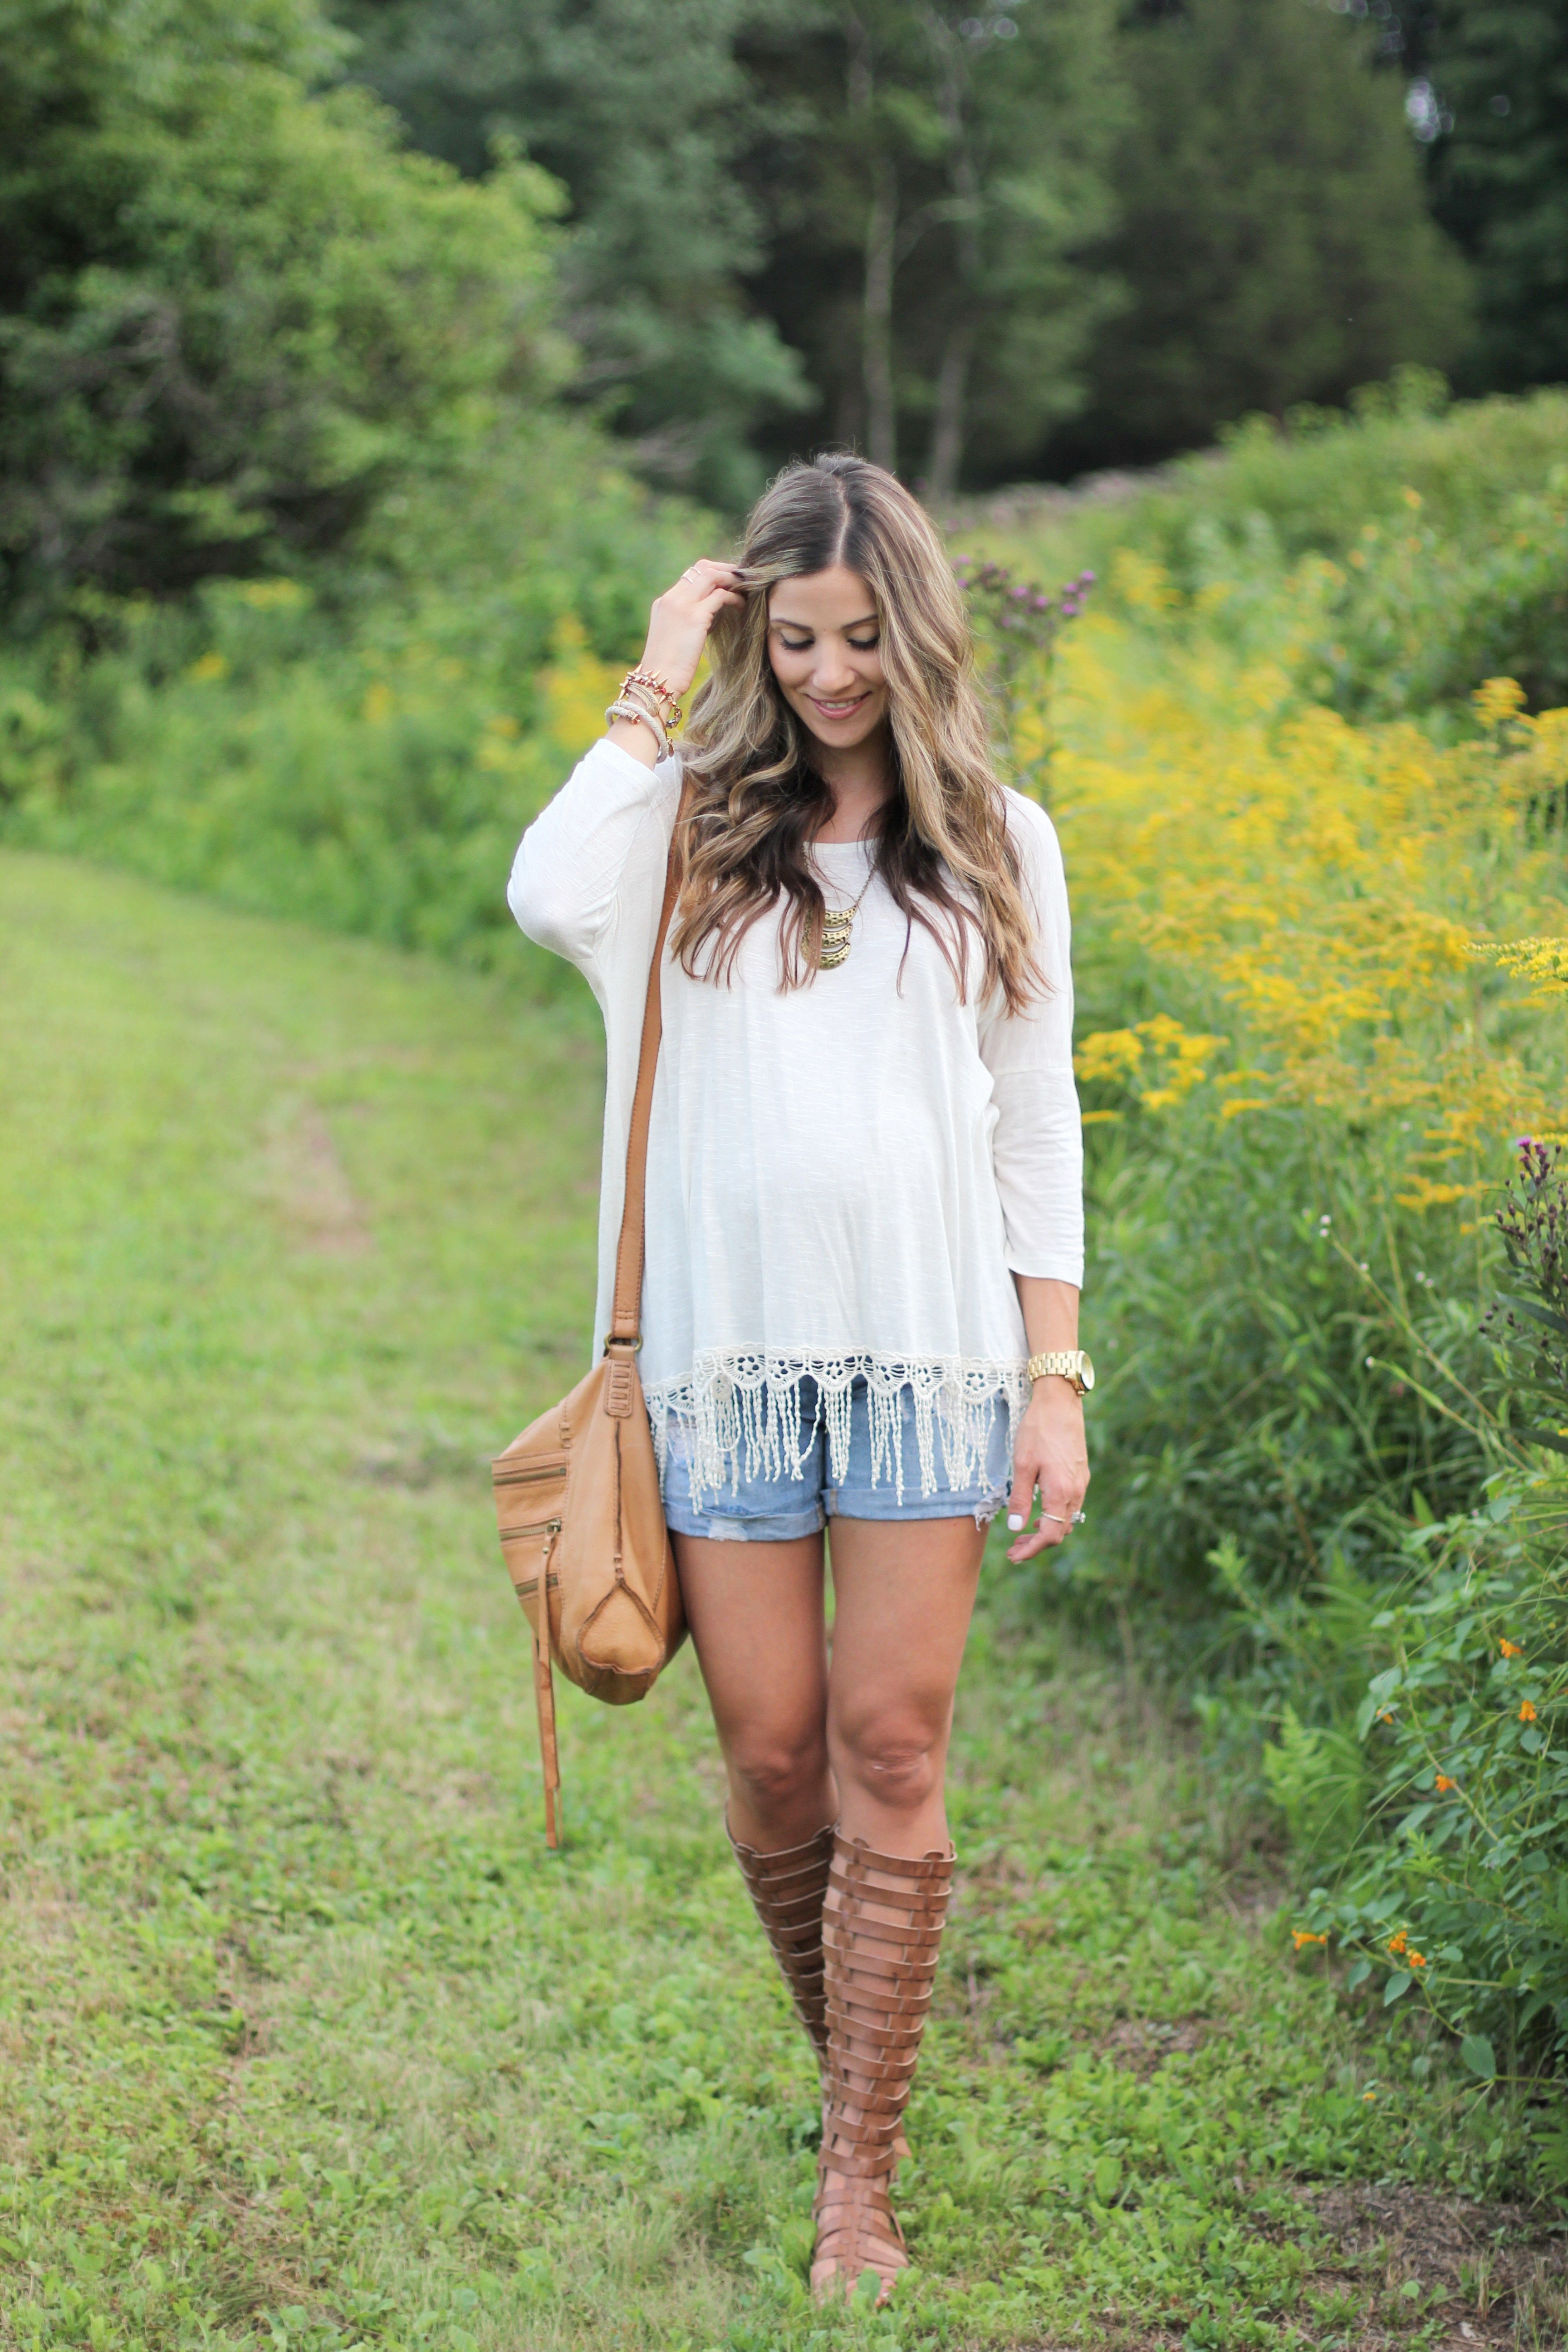 64863f5df6 Are you looking for the best maternity clothing stores  Lifestyle blogger Lauren  McBride has compiled the perfect maternity clothing store list!